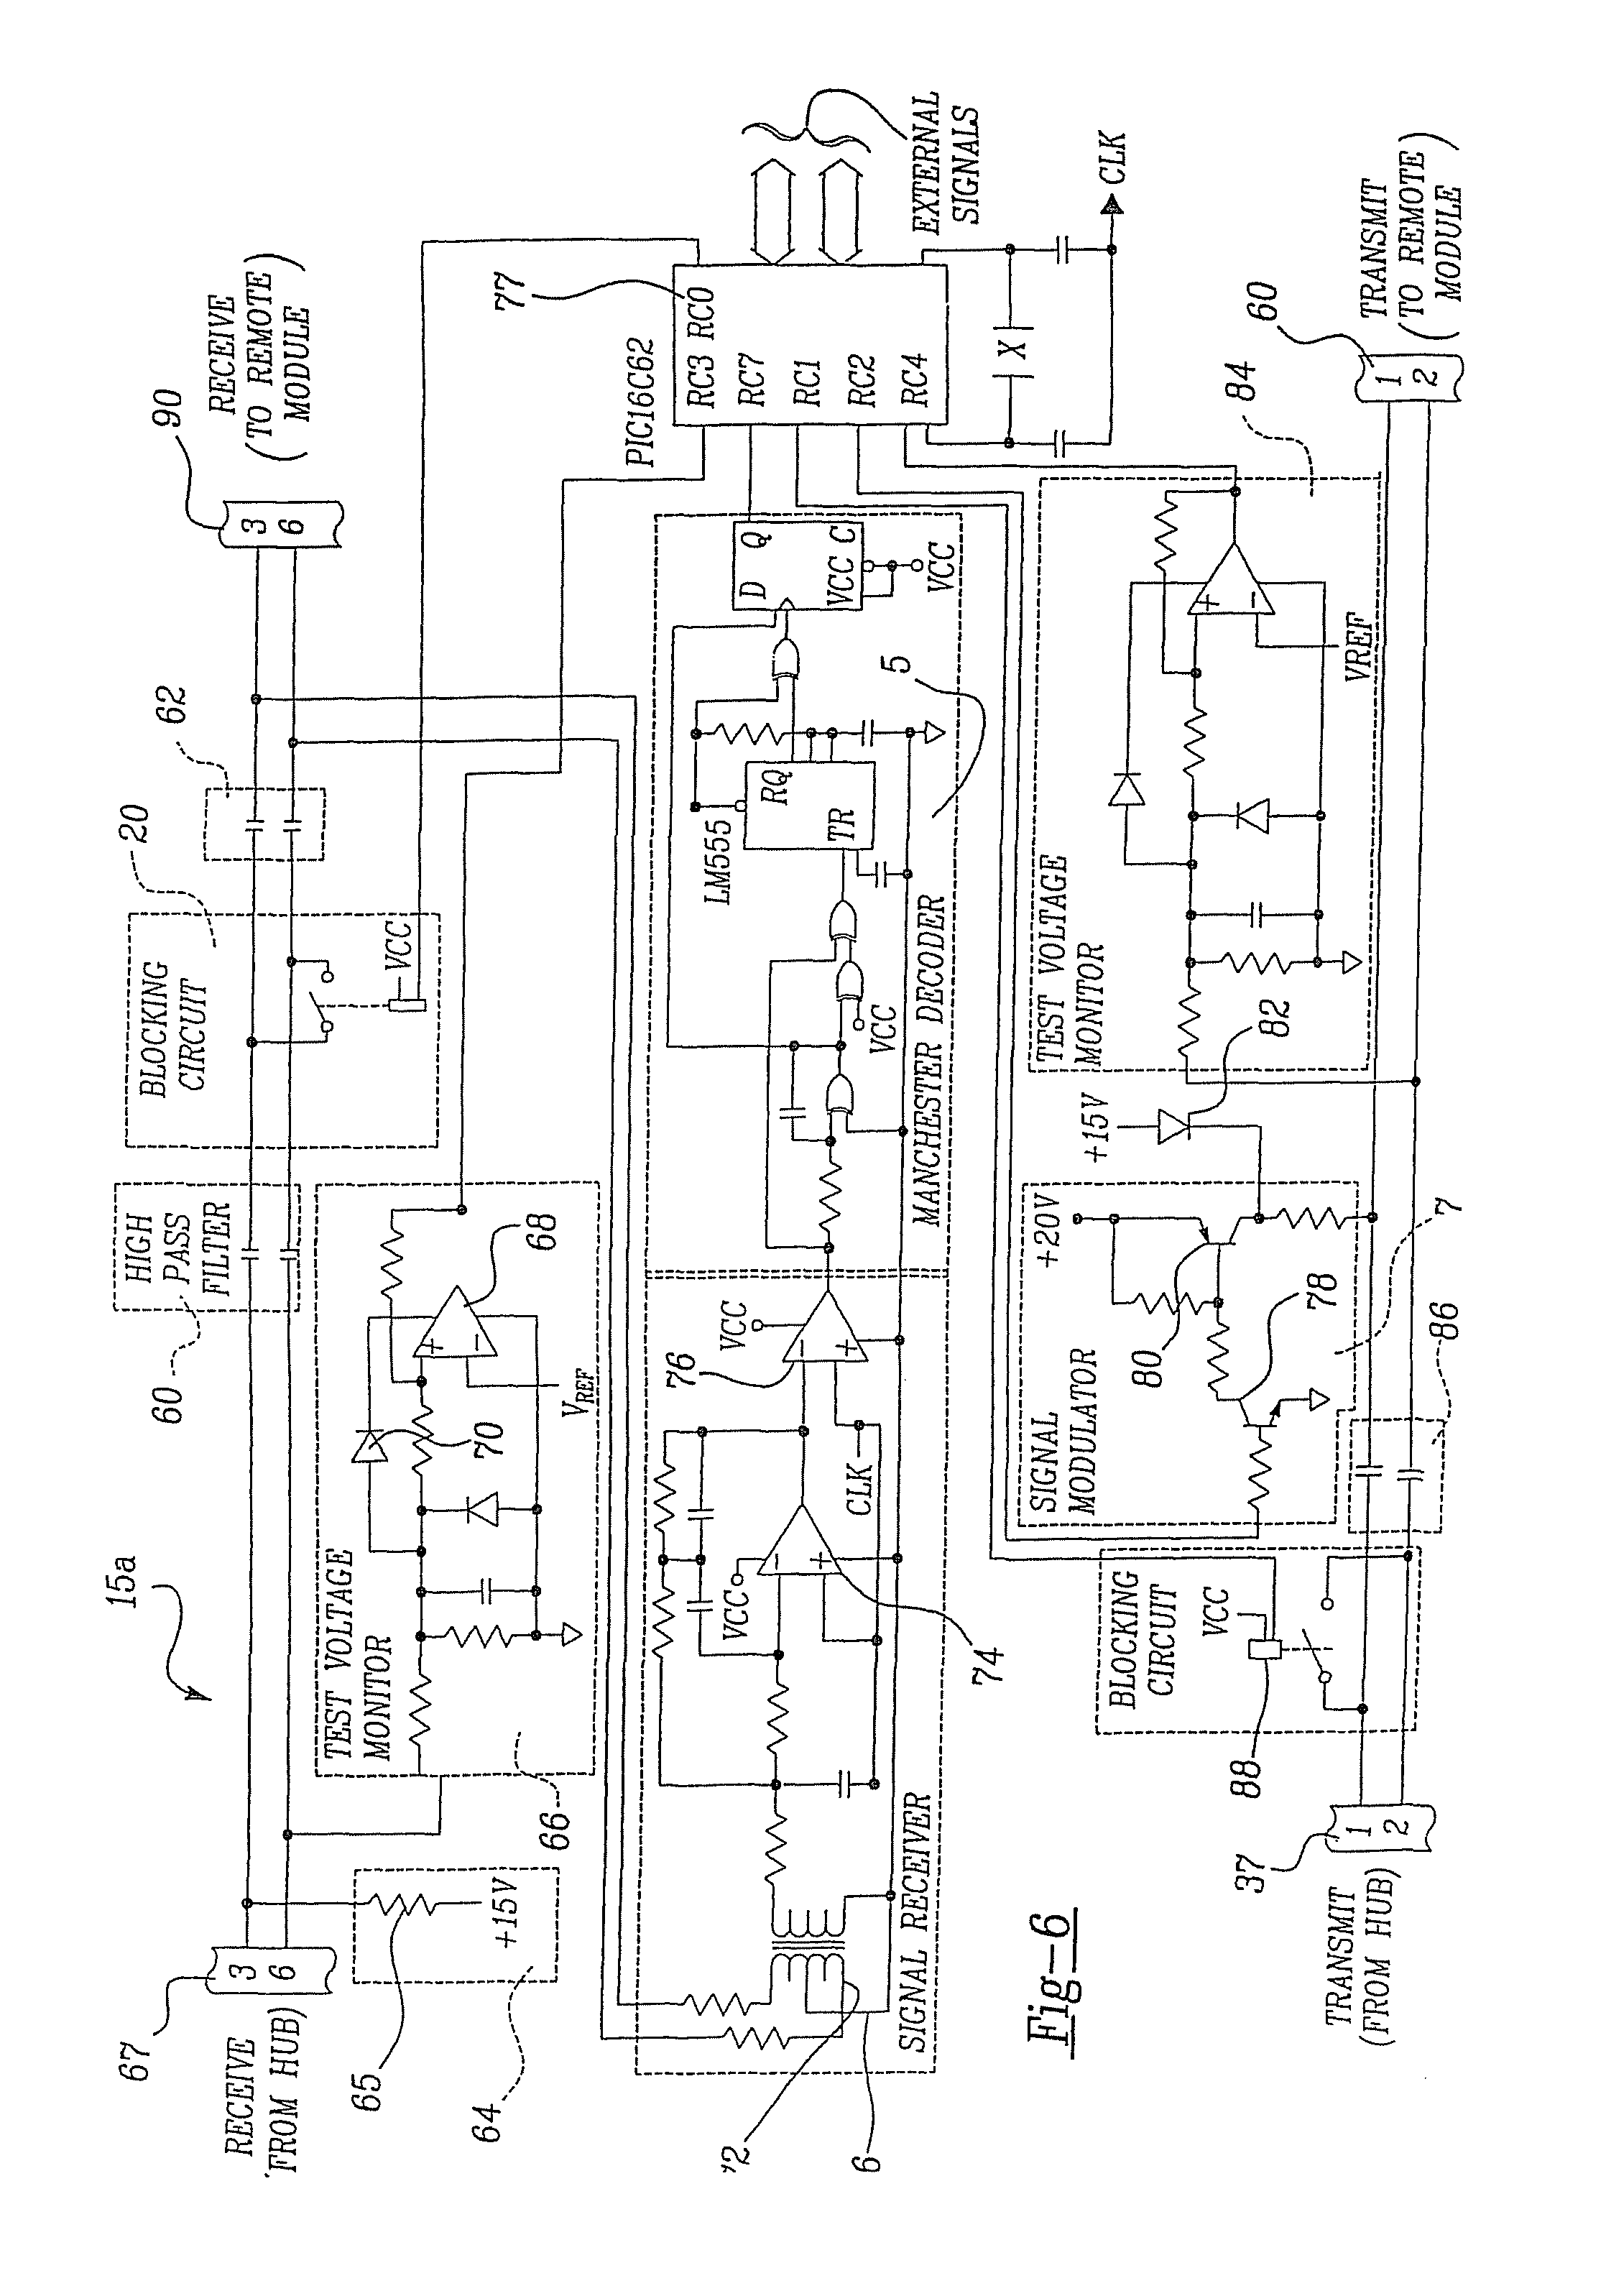 Patent Us 8155012 B2 Fig2 It Has Been Attached An Image Of The Motherboard Block Diagram